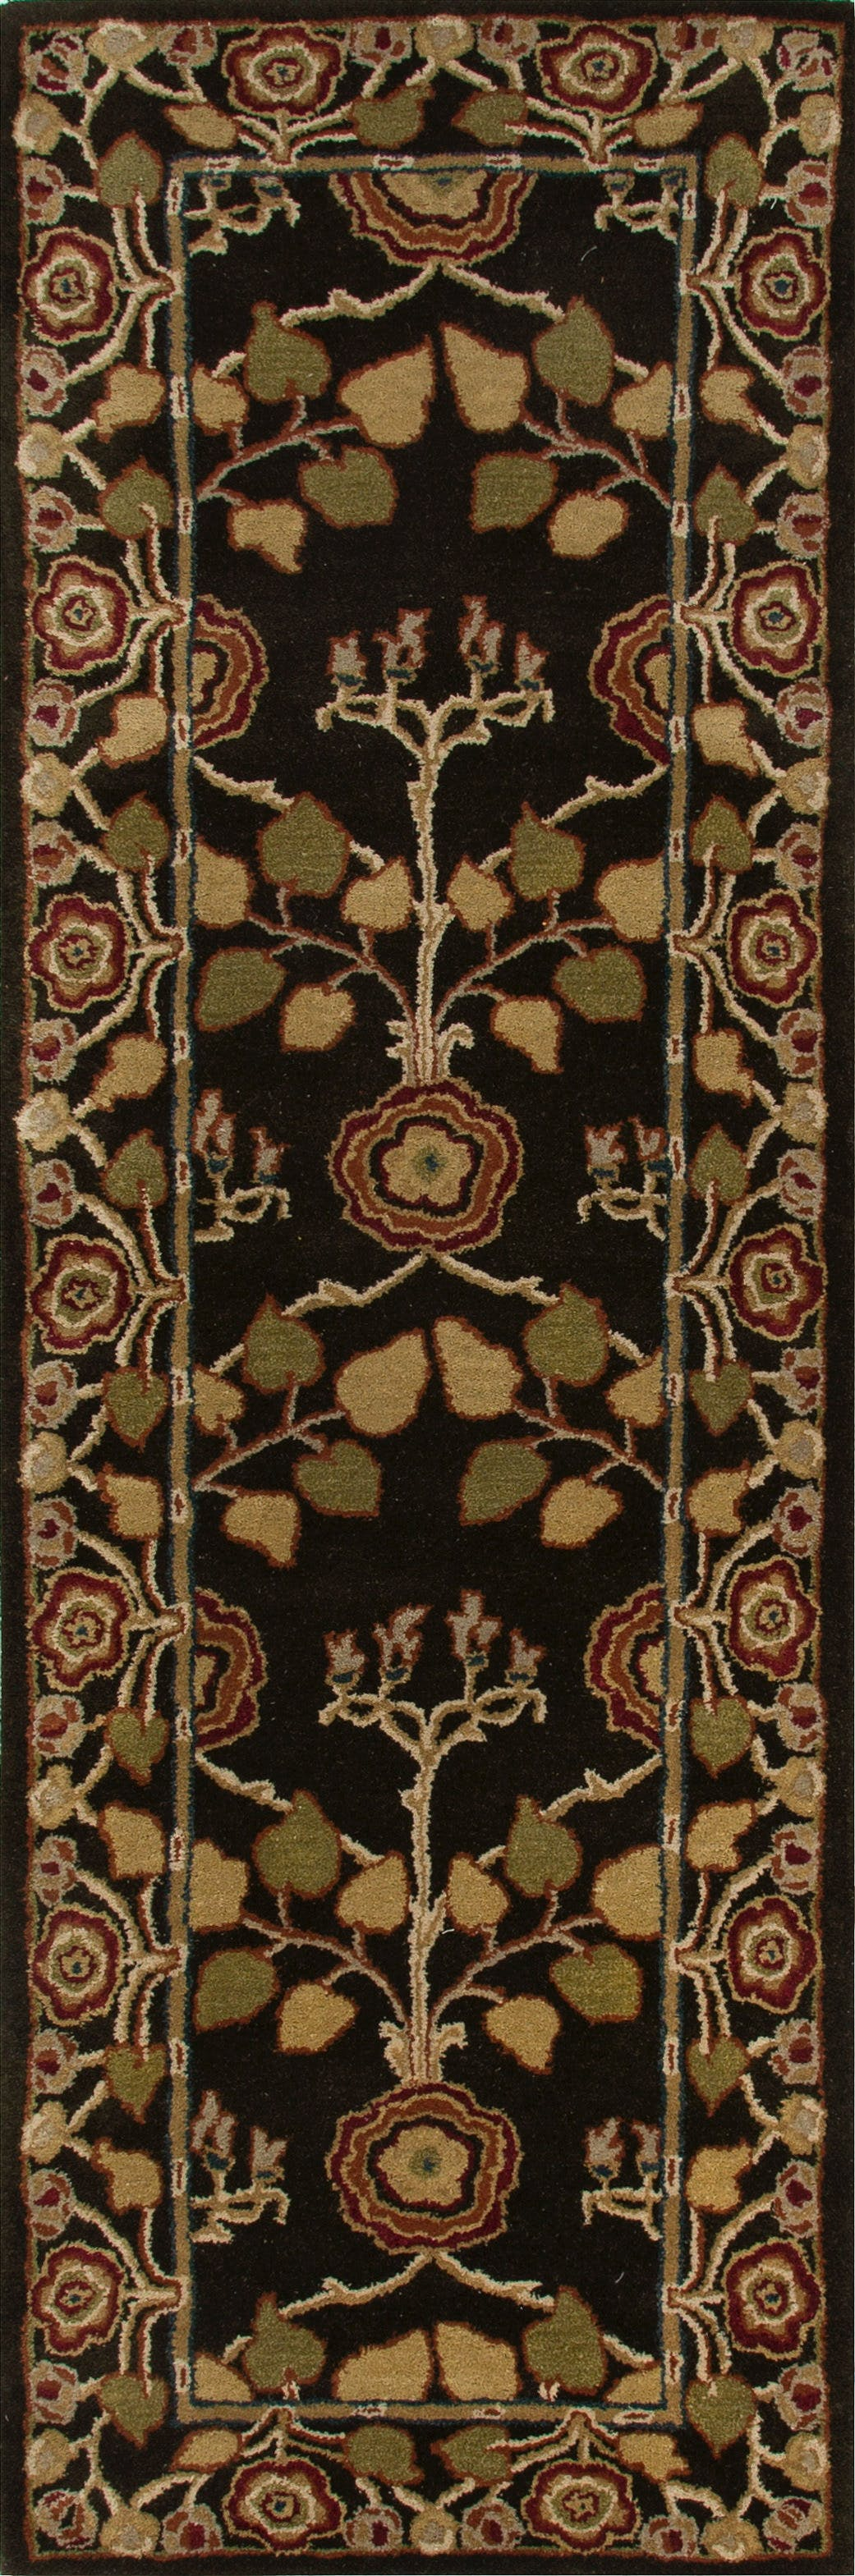 Picture of: Jaipur Rugs Floor Coverings Hand Tufted Arts And Craft Pattern Wool Brown Yellow Area Rug 8×10